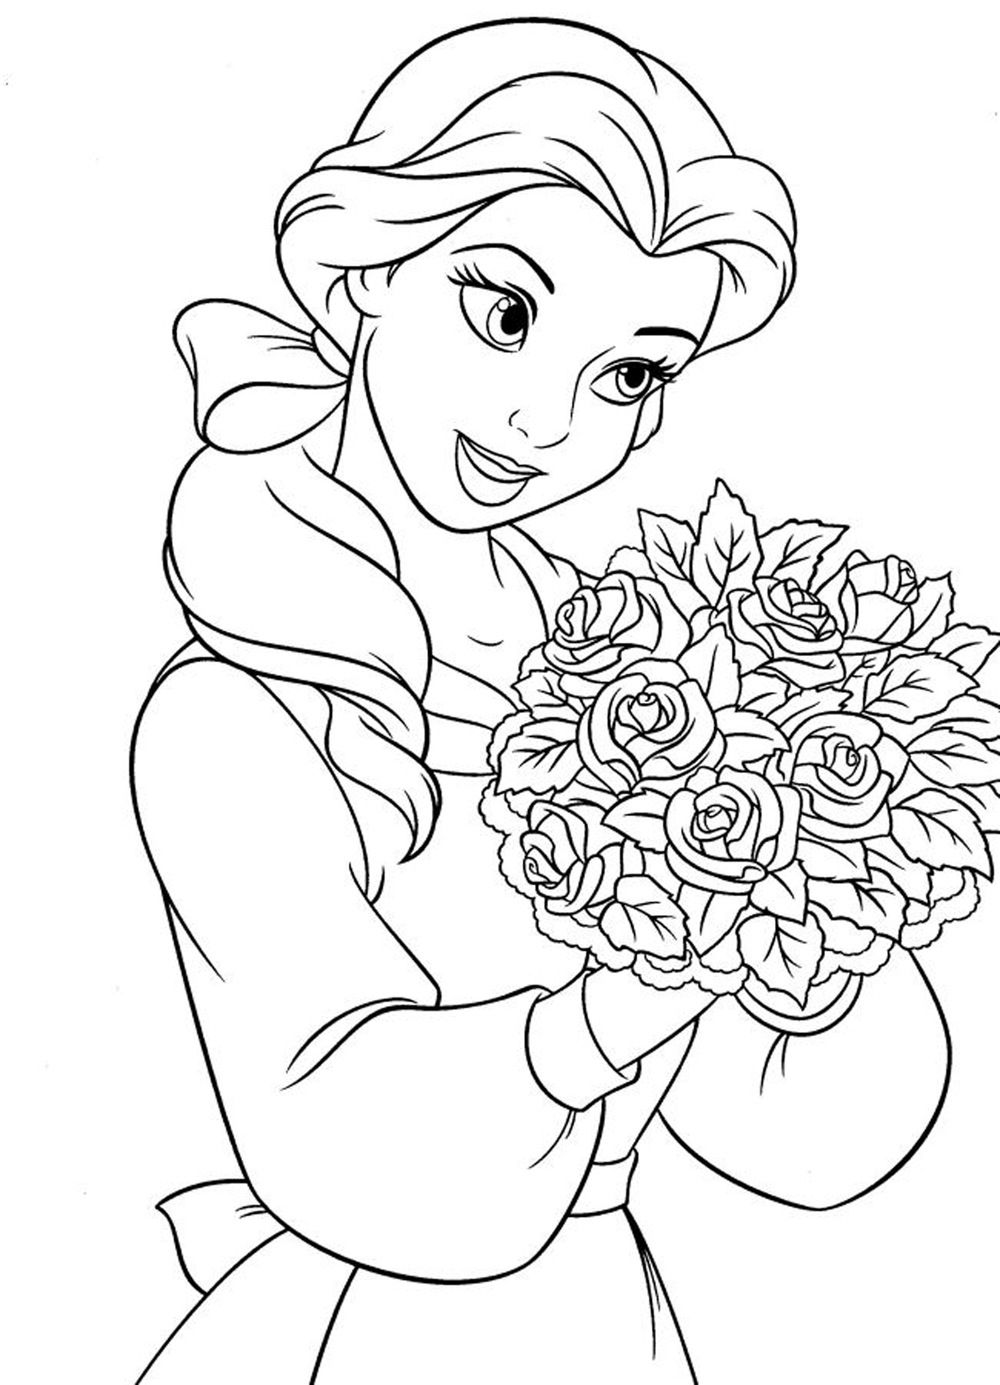 Disney princess coloring book for adults - Find This Pin And More On Coloring Pages Disney Princess